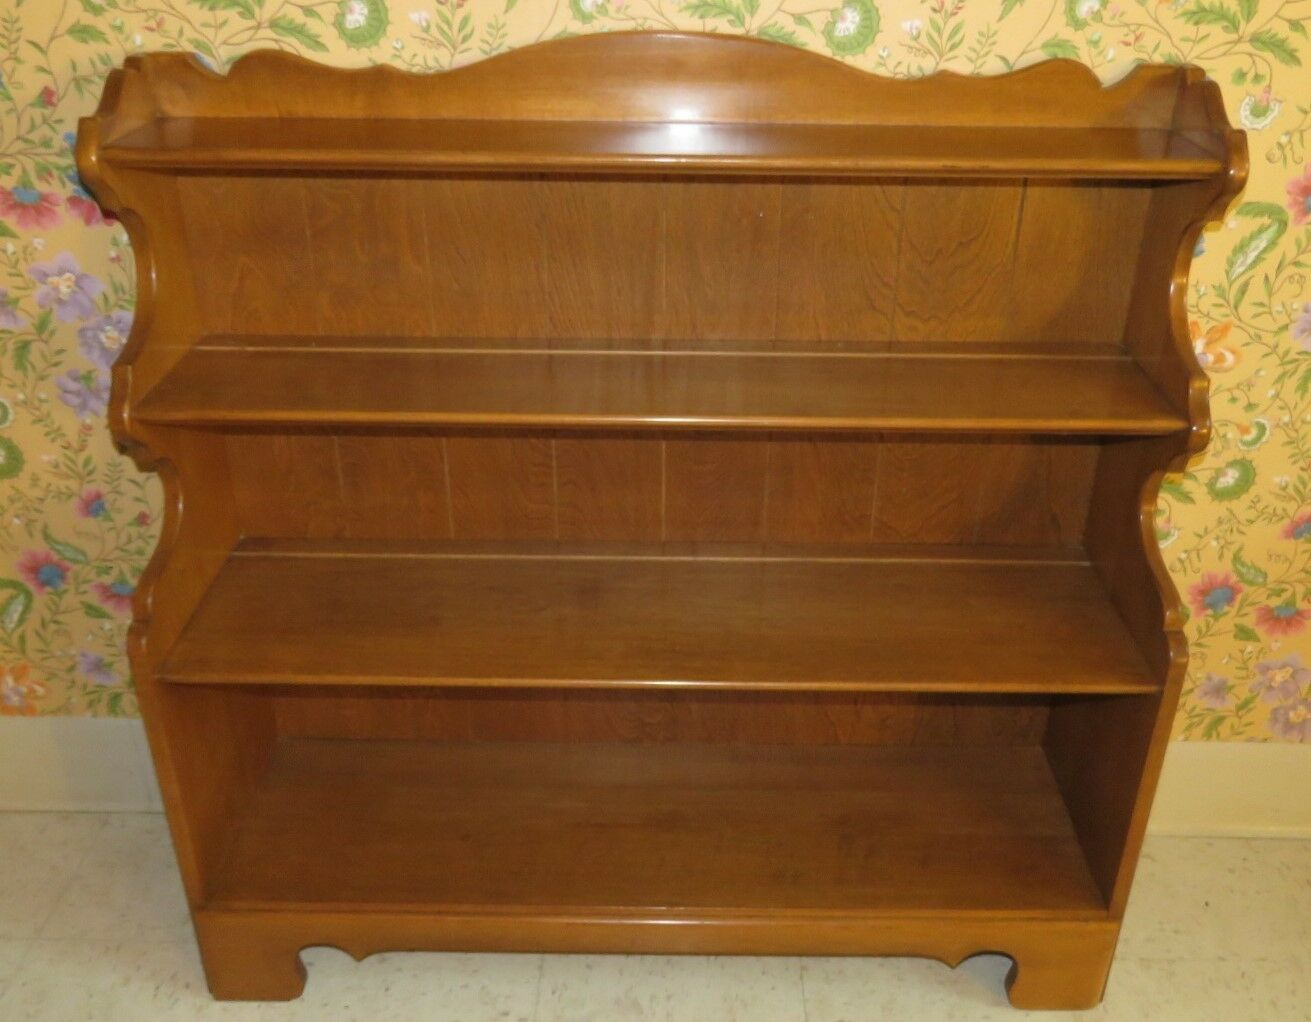 Ethan Allen Heirloom Nutmeg Maple Short Library Bookcase 10 918